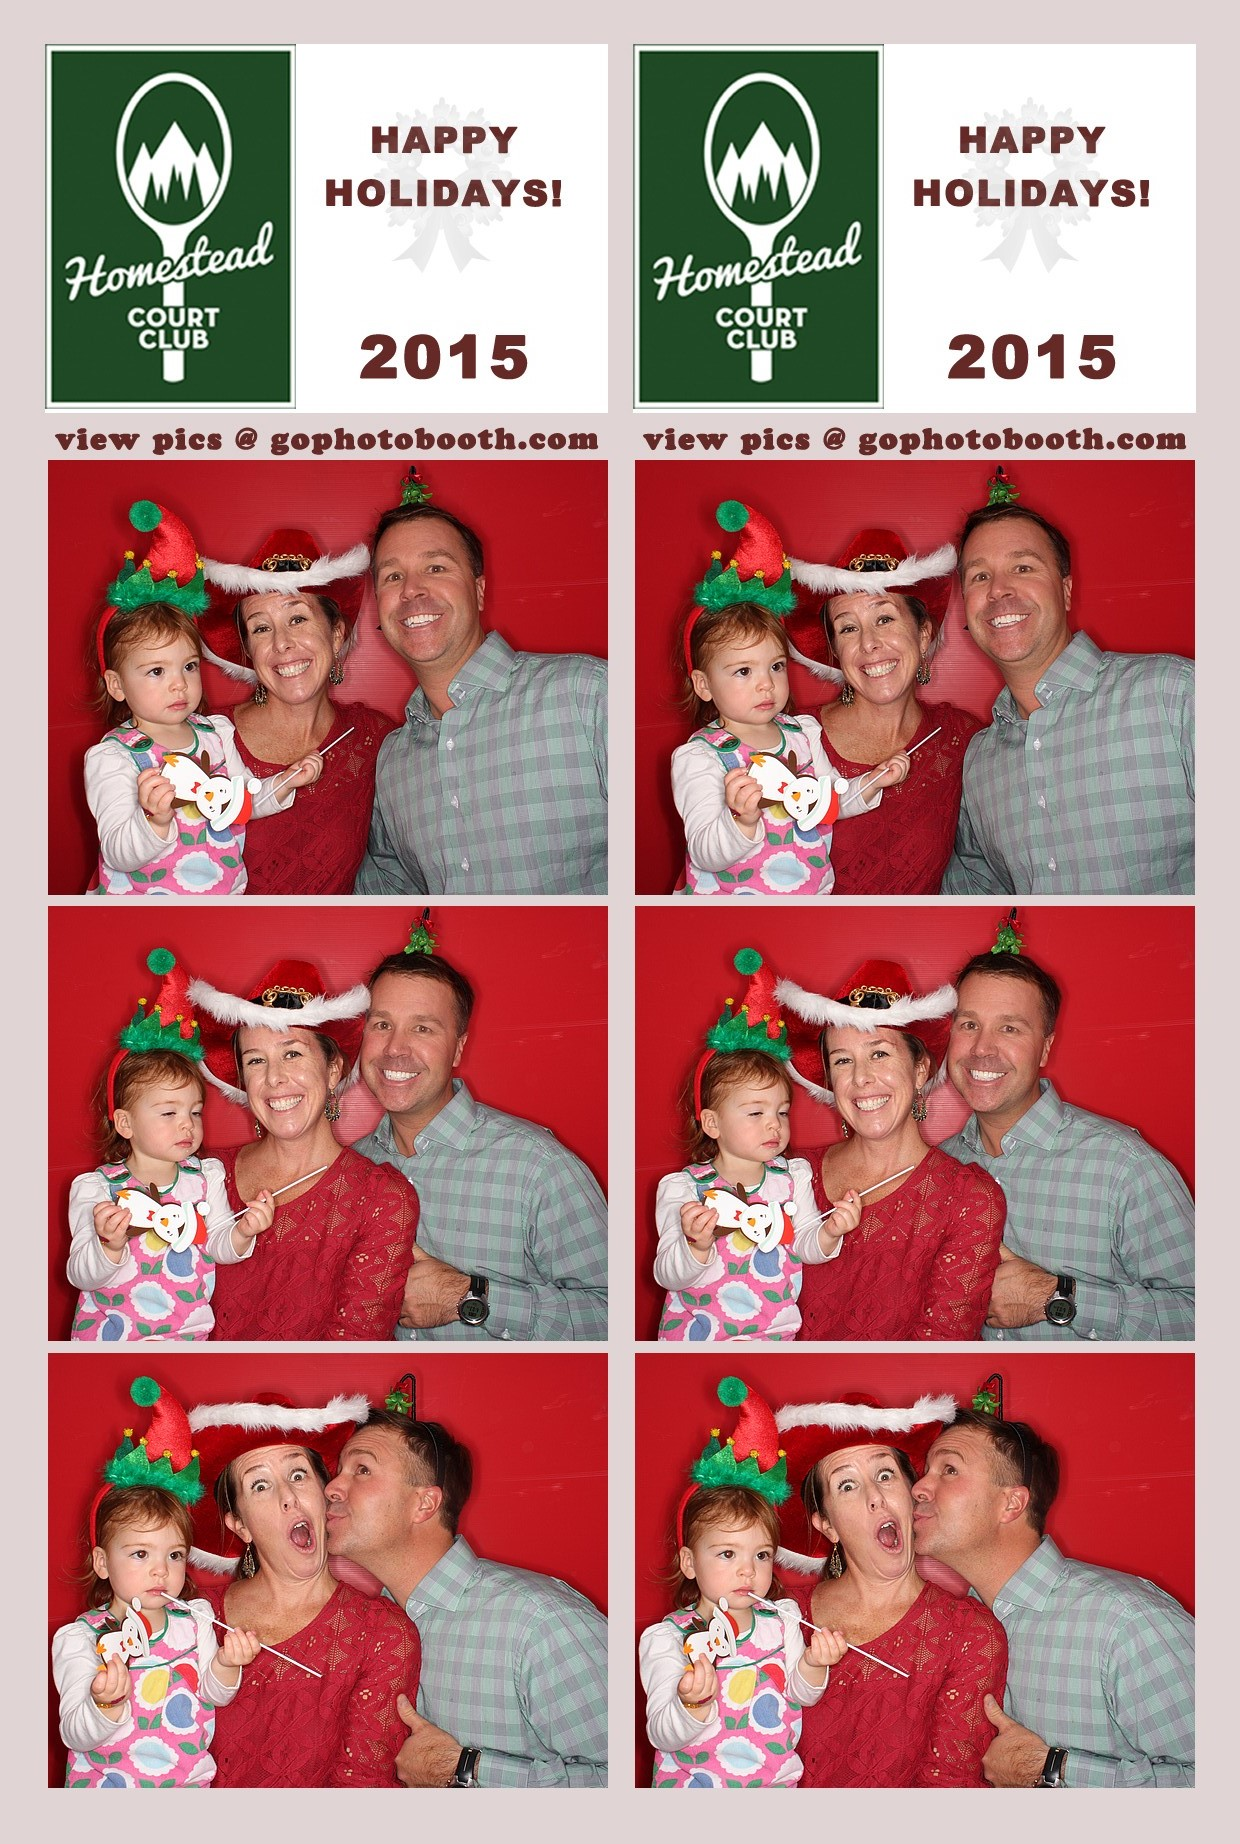 Homestead Court Club Holiday Party 12/06/2015